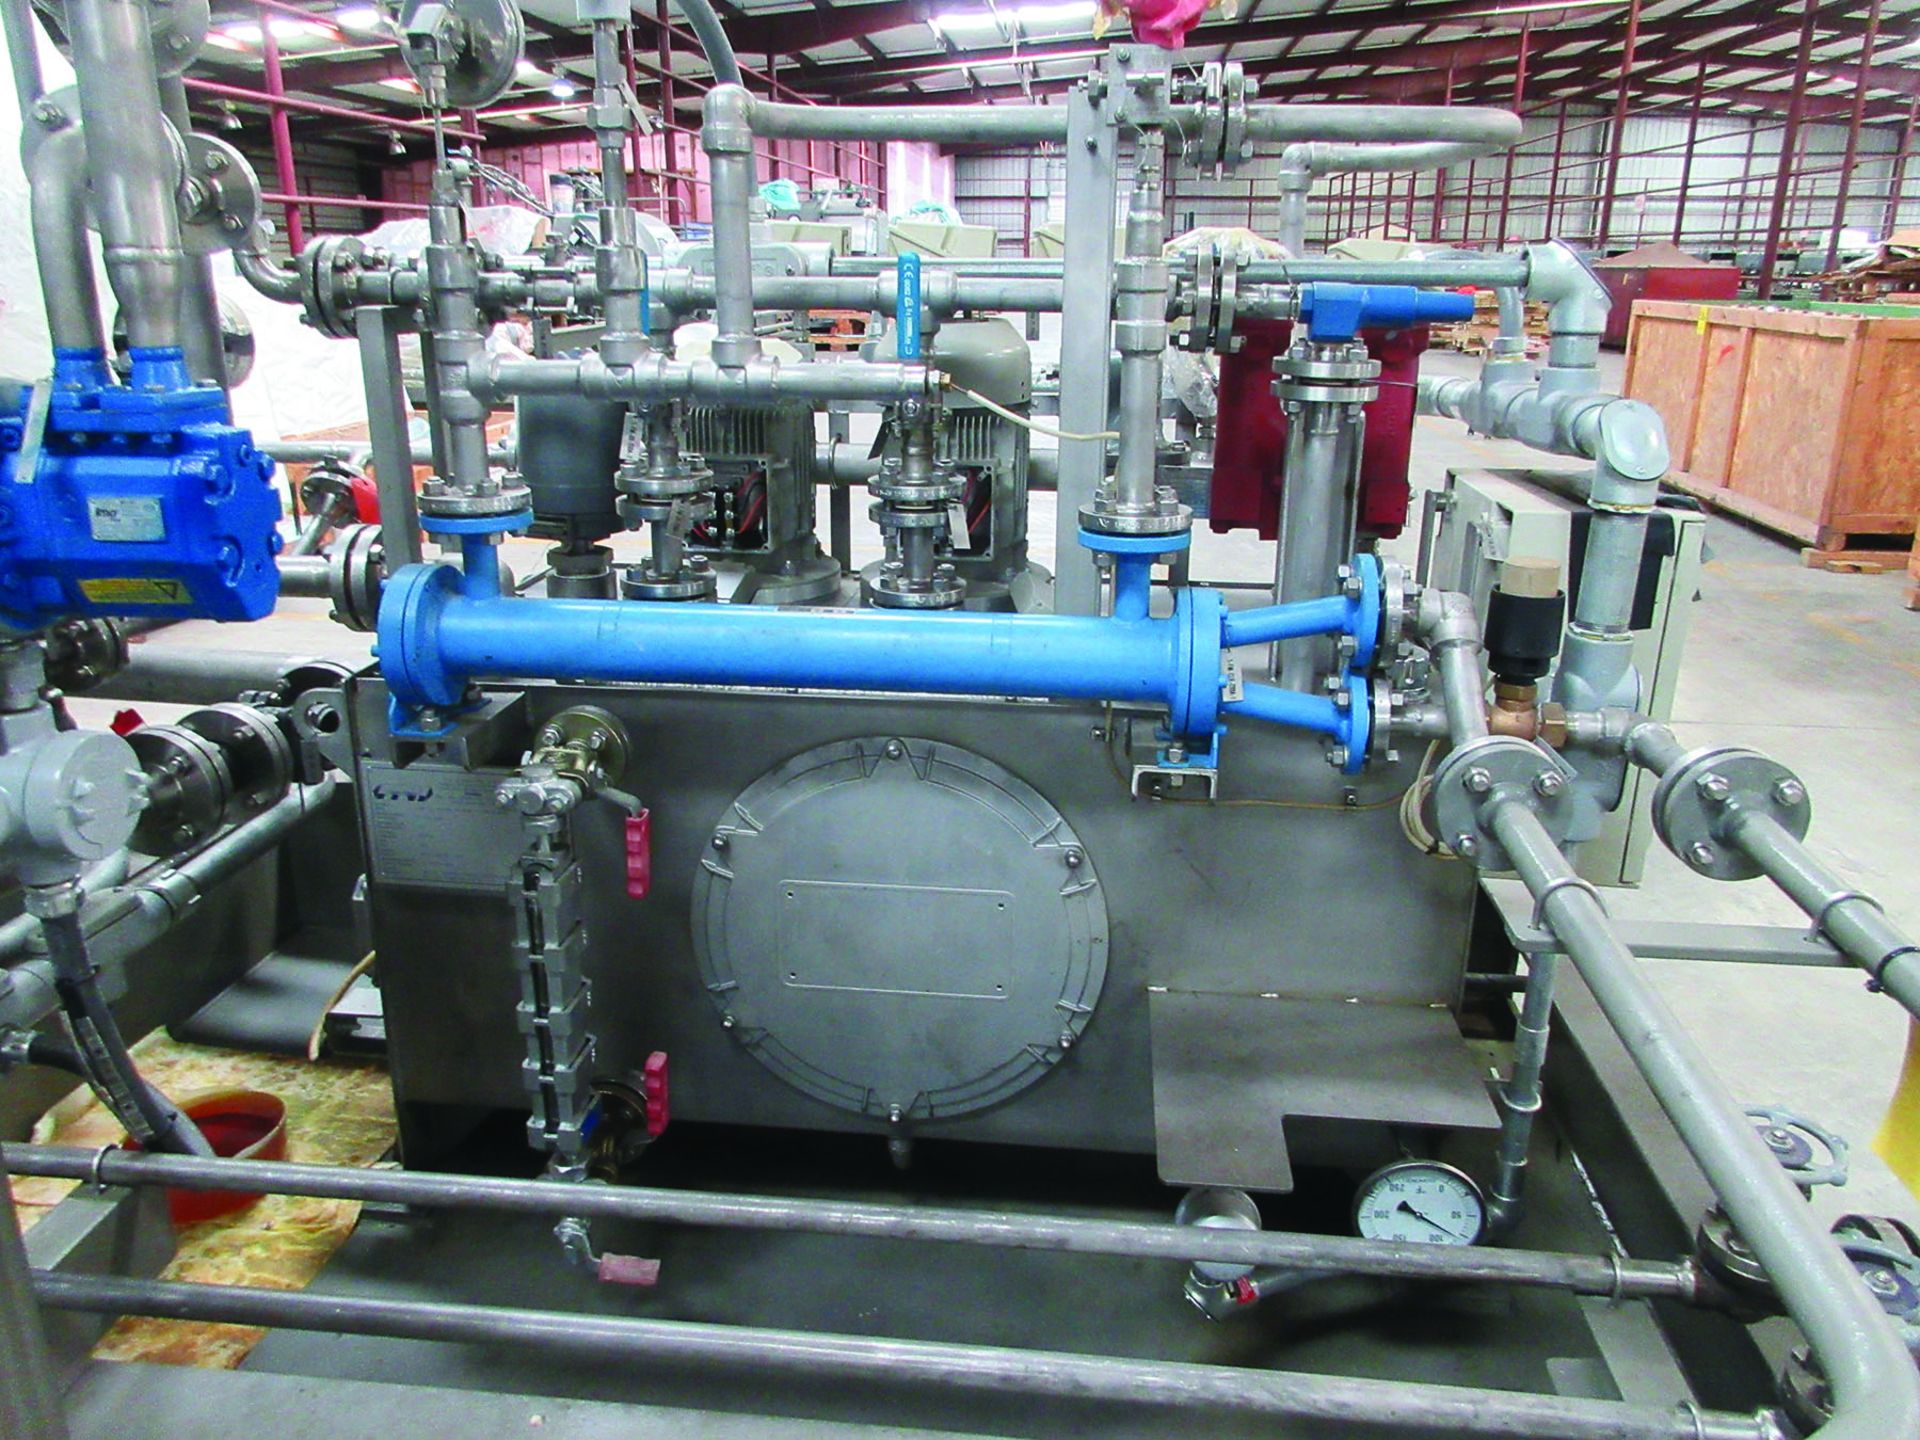 BOILER FEEDWATER BOOSTER PUMP SLED, GE 3,000 HP INDUCTION MOTOR 3585 RPM, 6600 VOLTS, 8313S FRAME, - Image 4 of 13